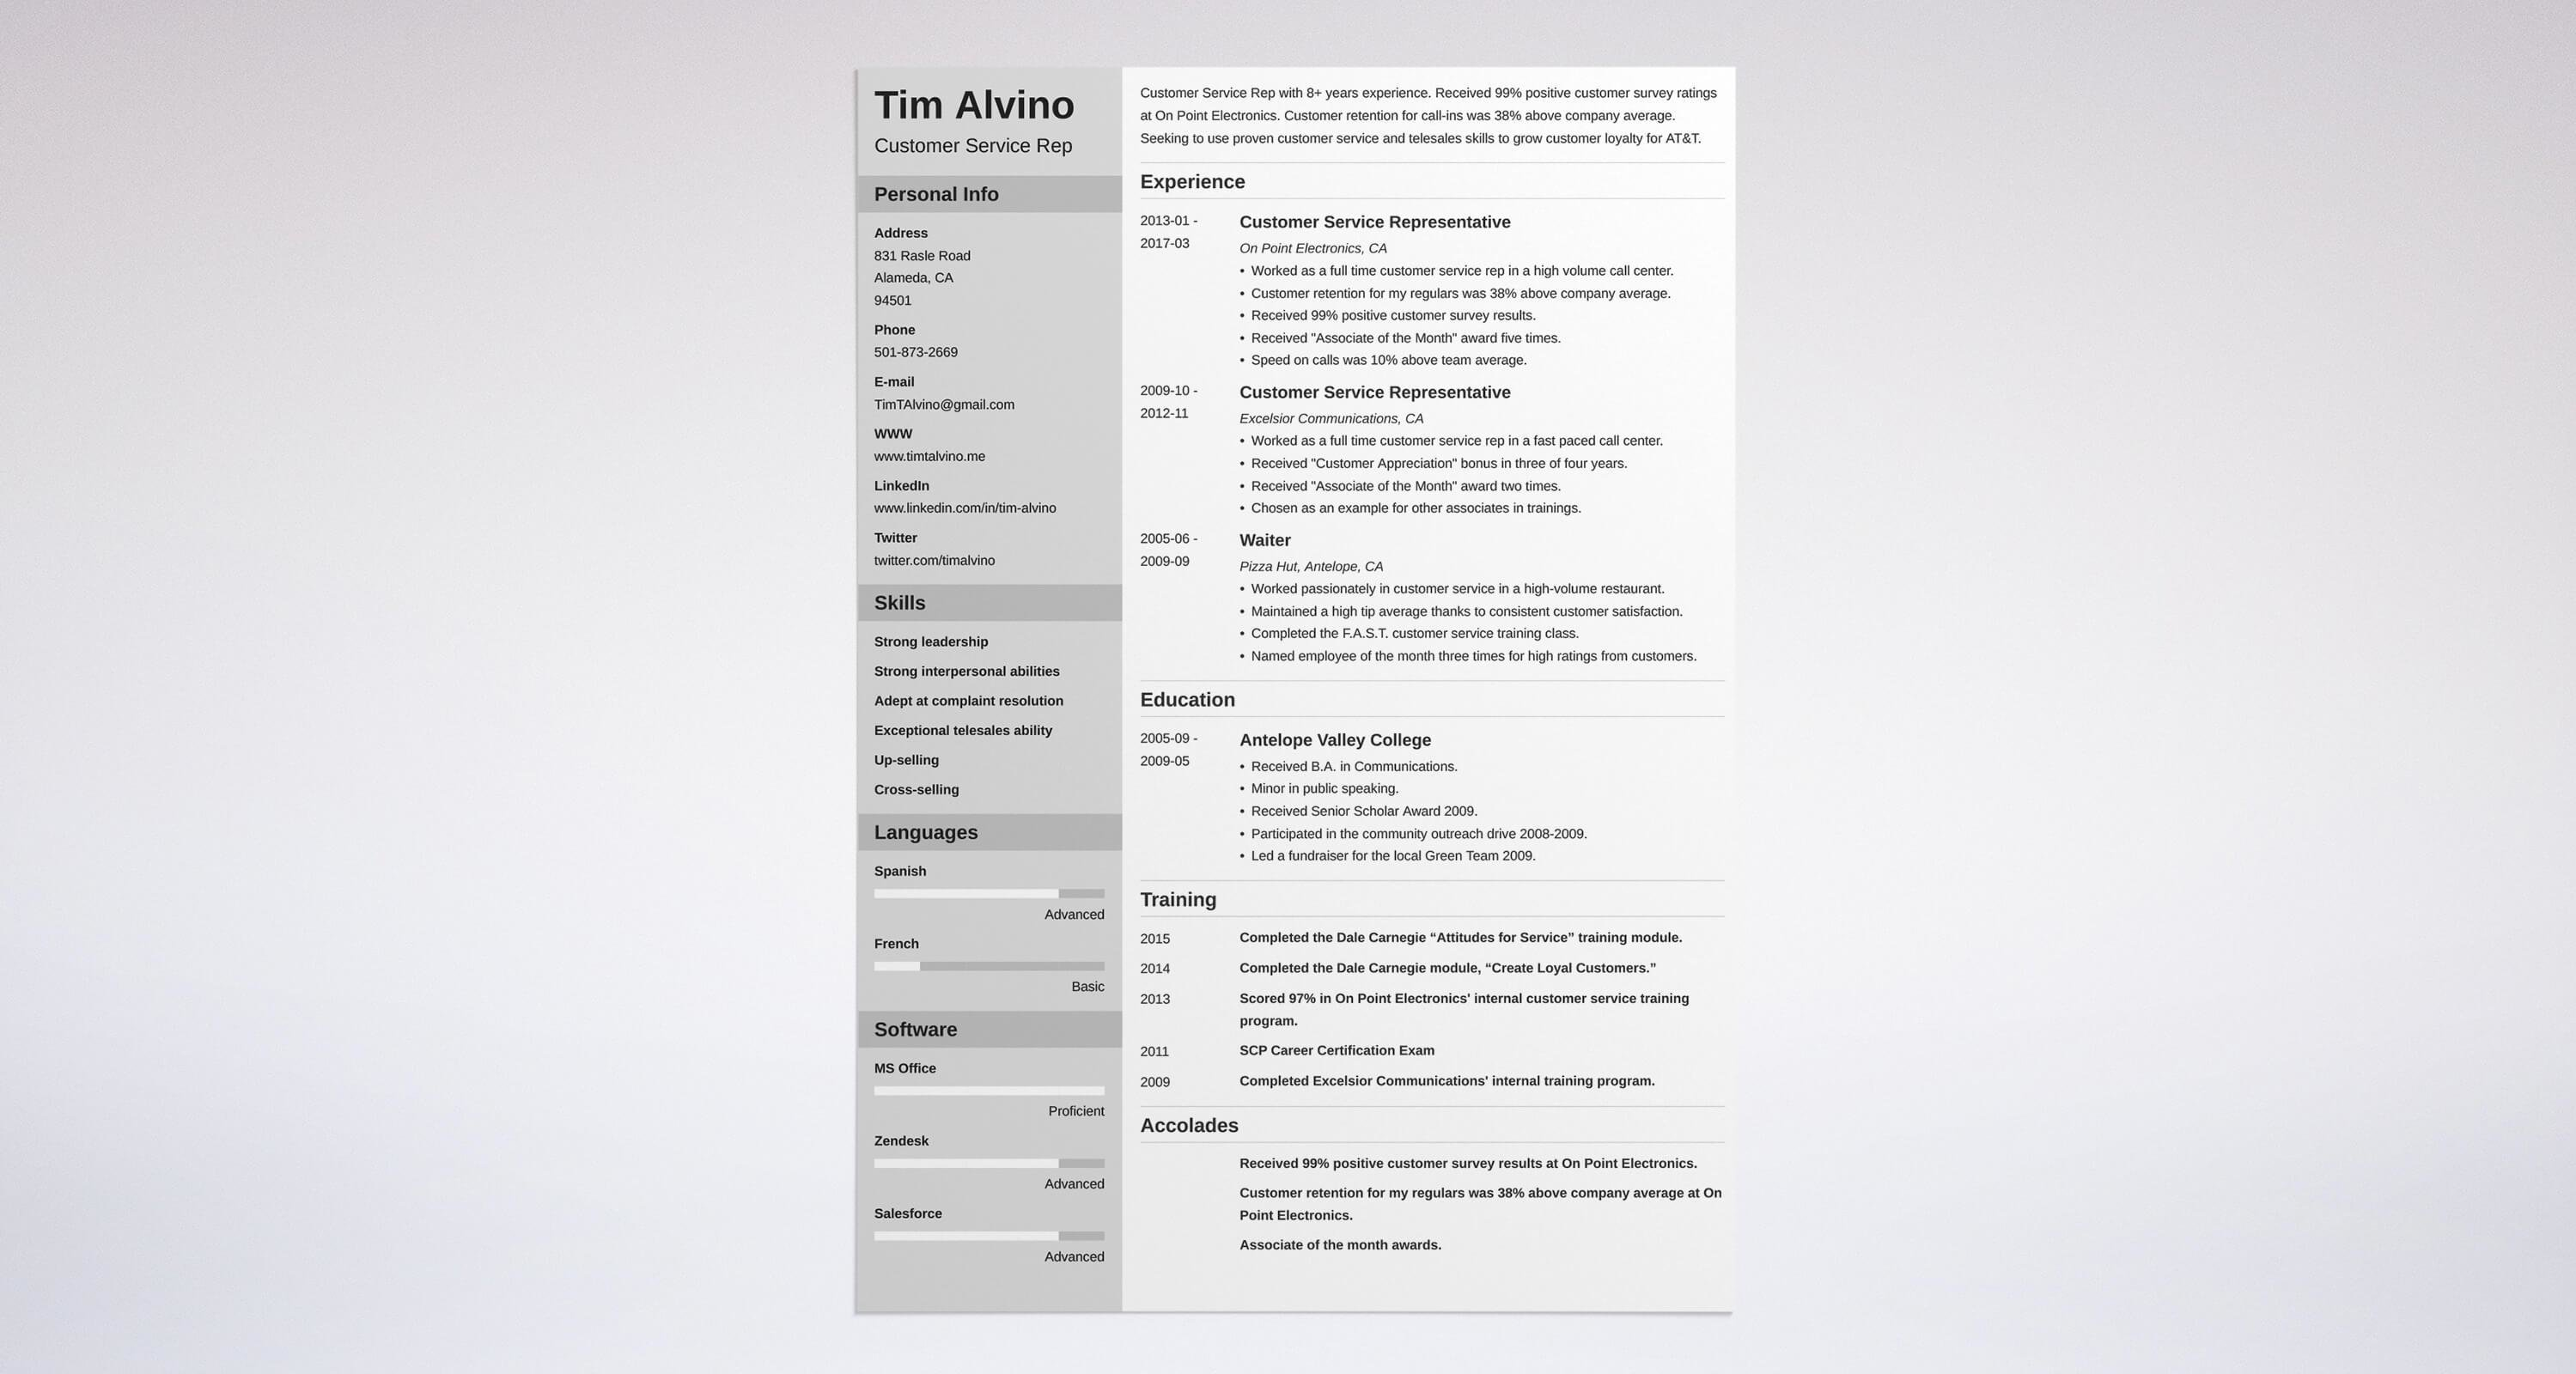 customer service resume sample plete guide [ 20 examples]